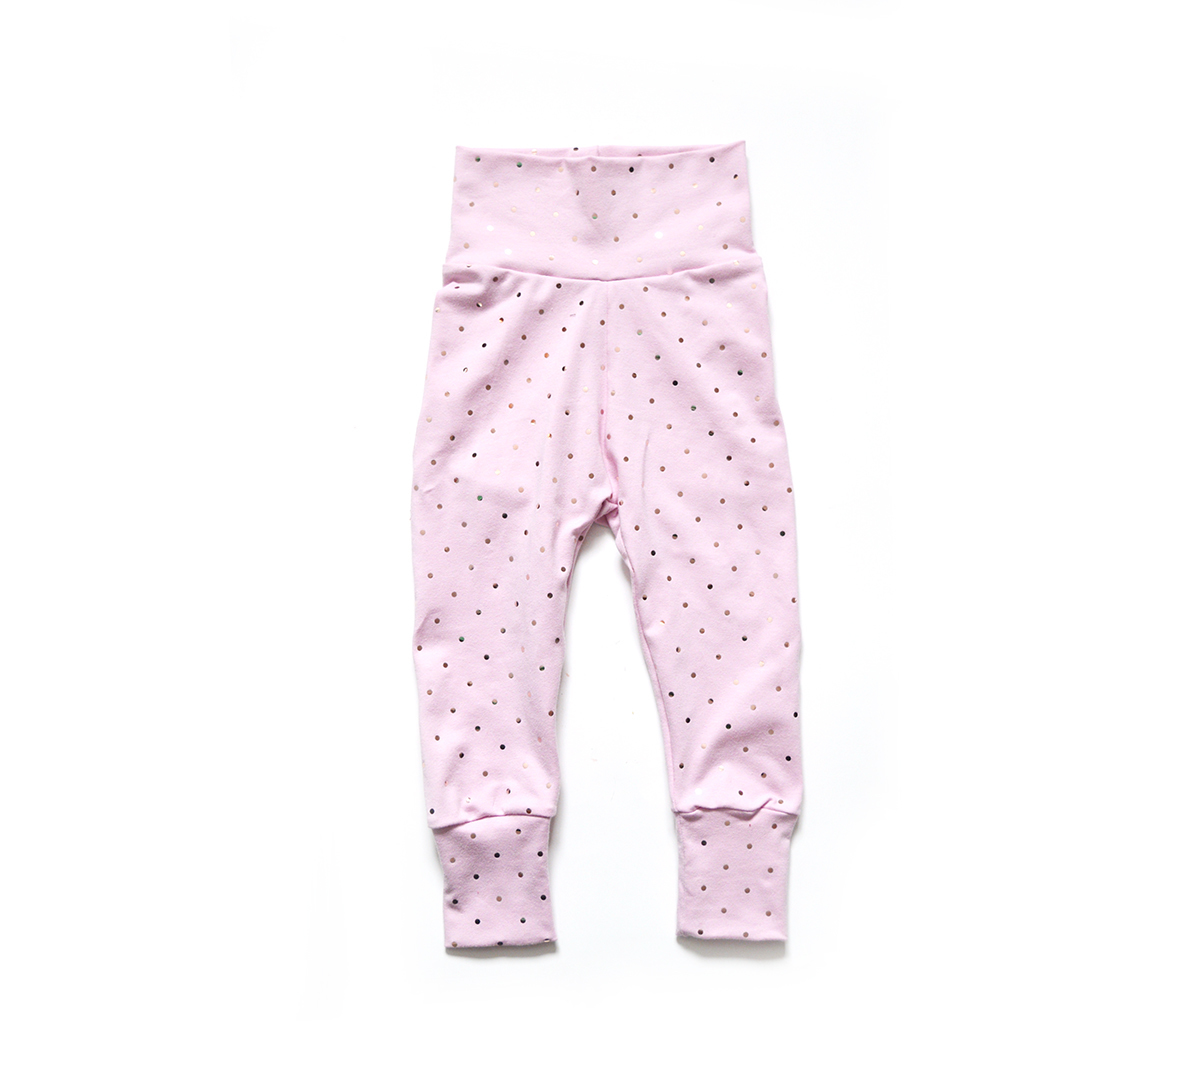 Little Sprout One-Size Pants™ Spangled Pink 00777